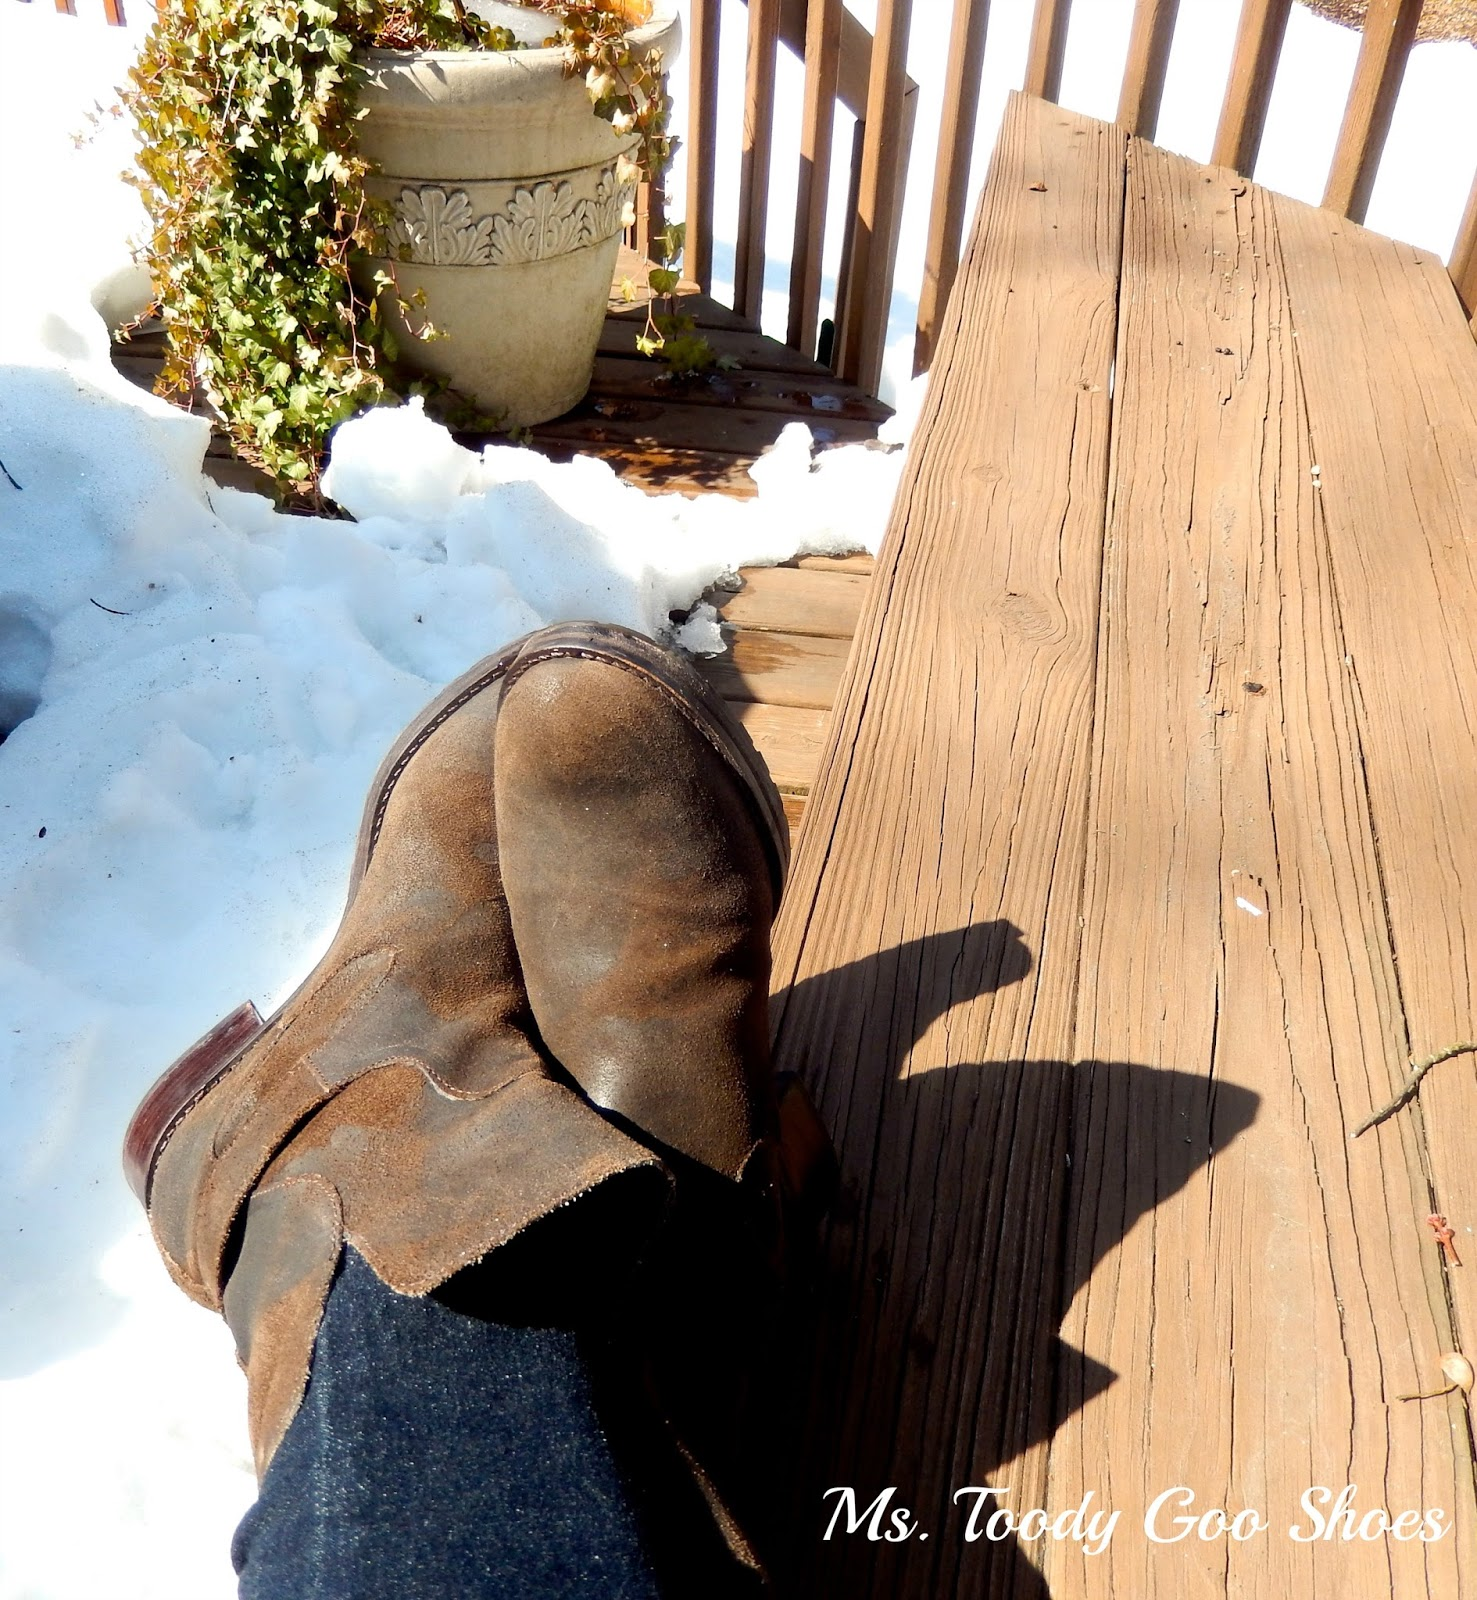 My March Photo Diary  --- Ms. Toody Goo Shoes